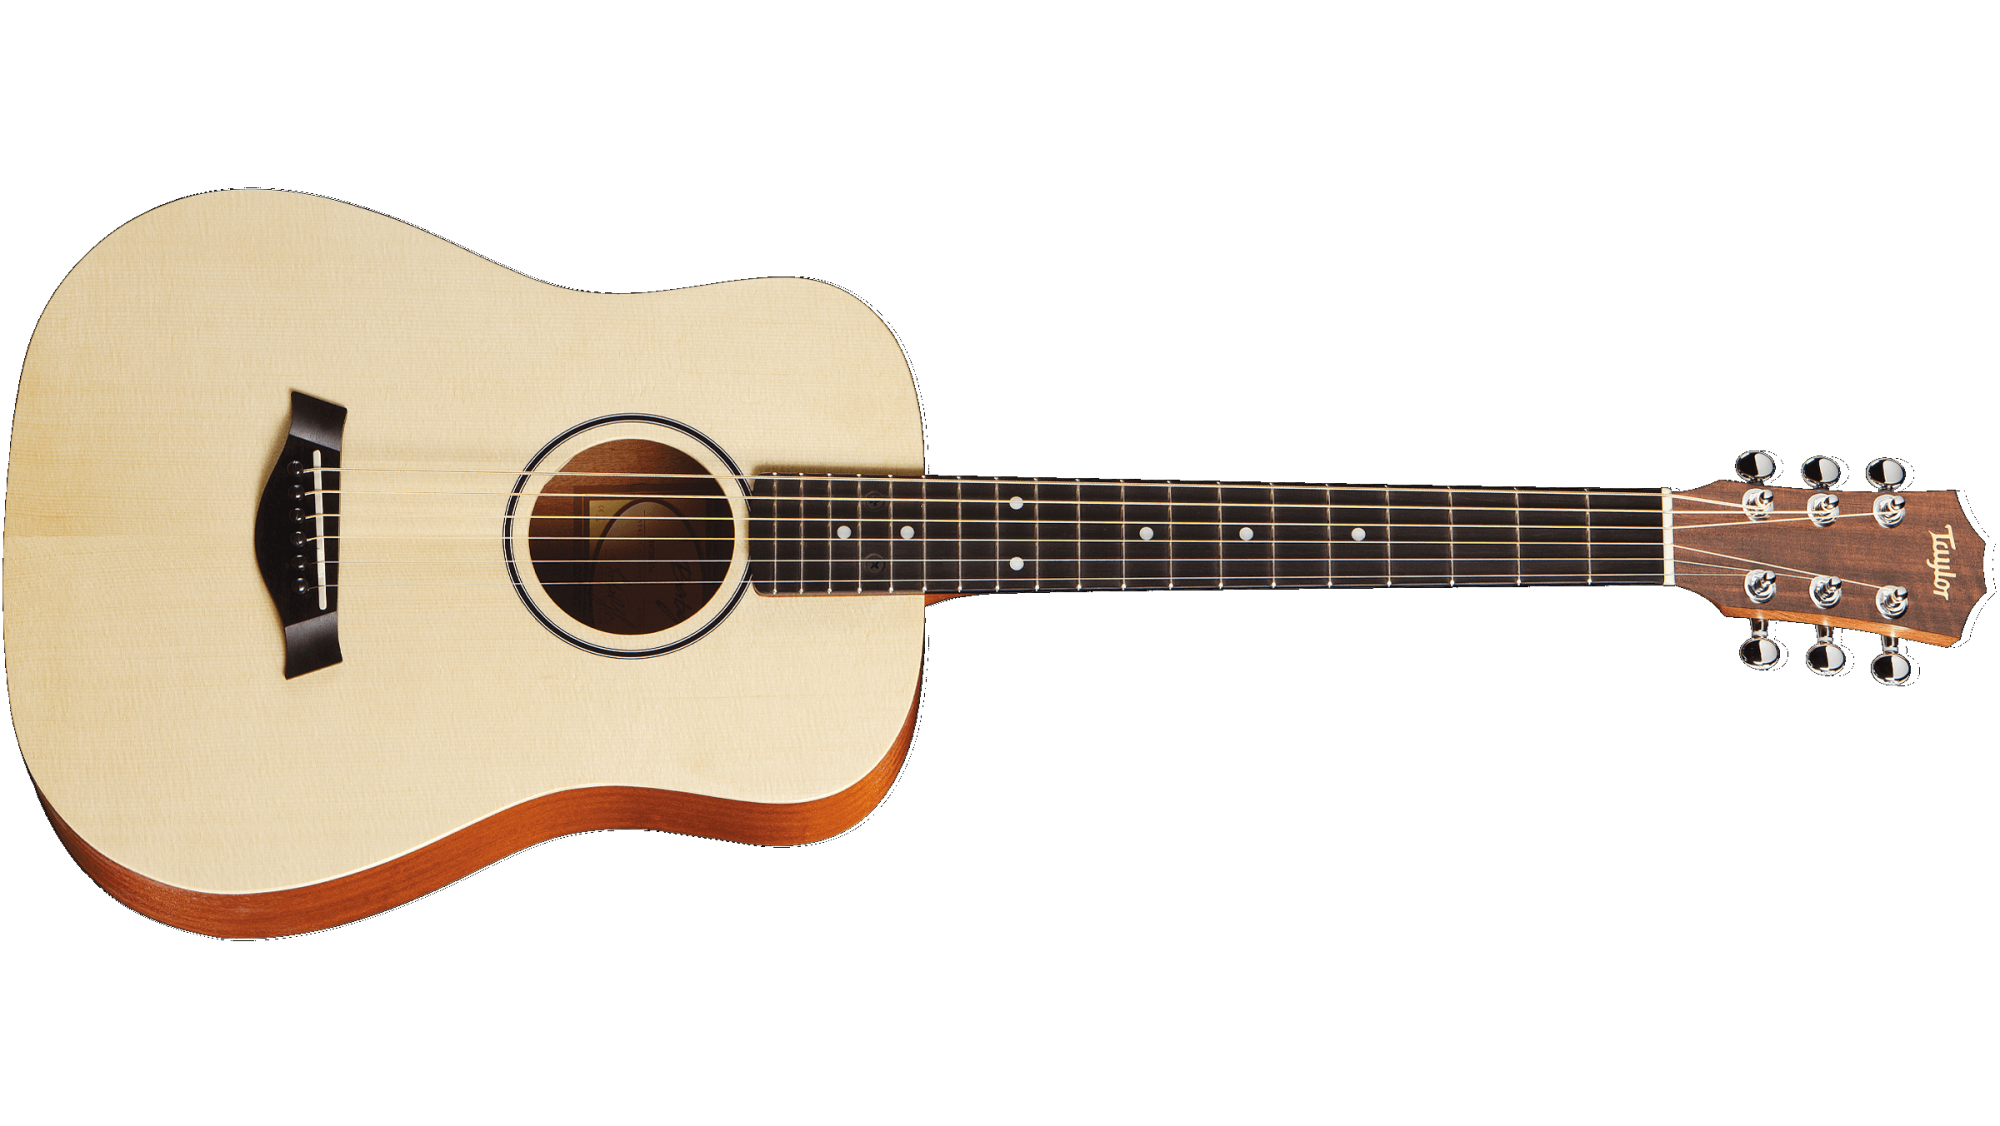 Taylor BT1 Baby Taylor Guitar